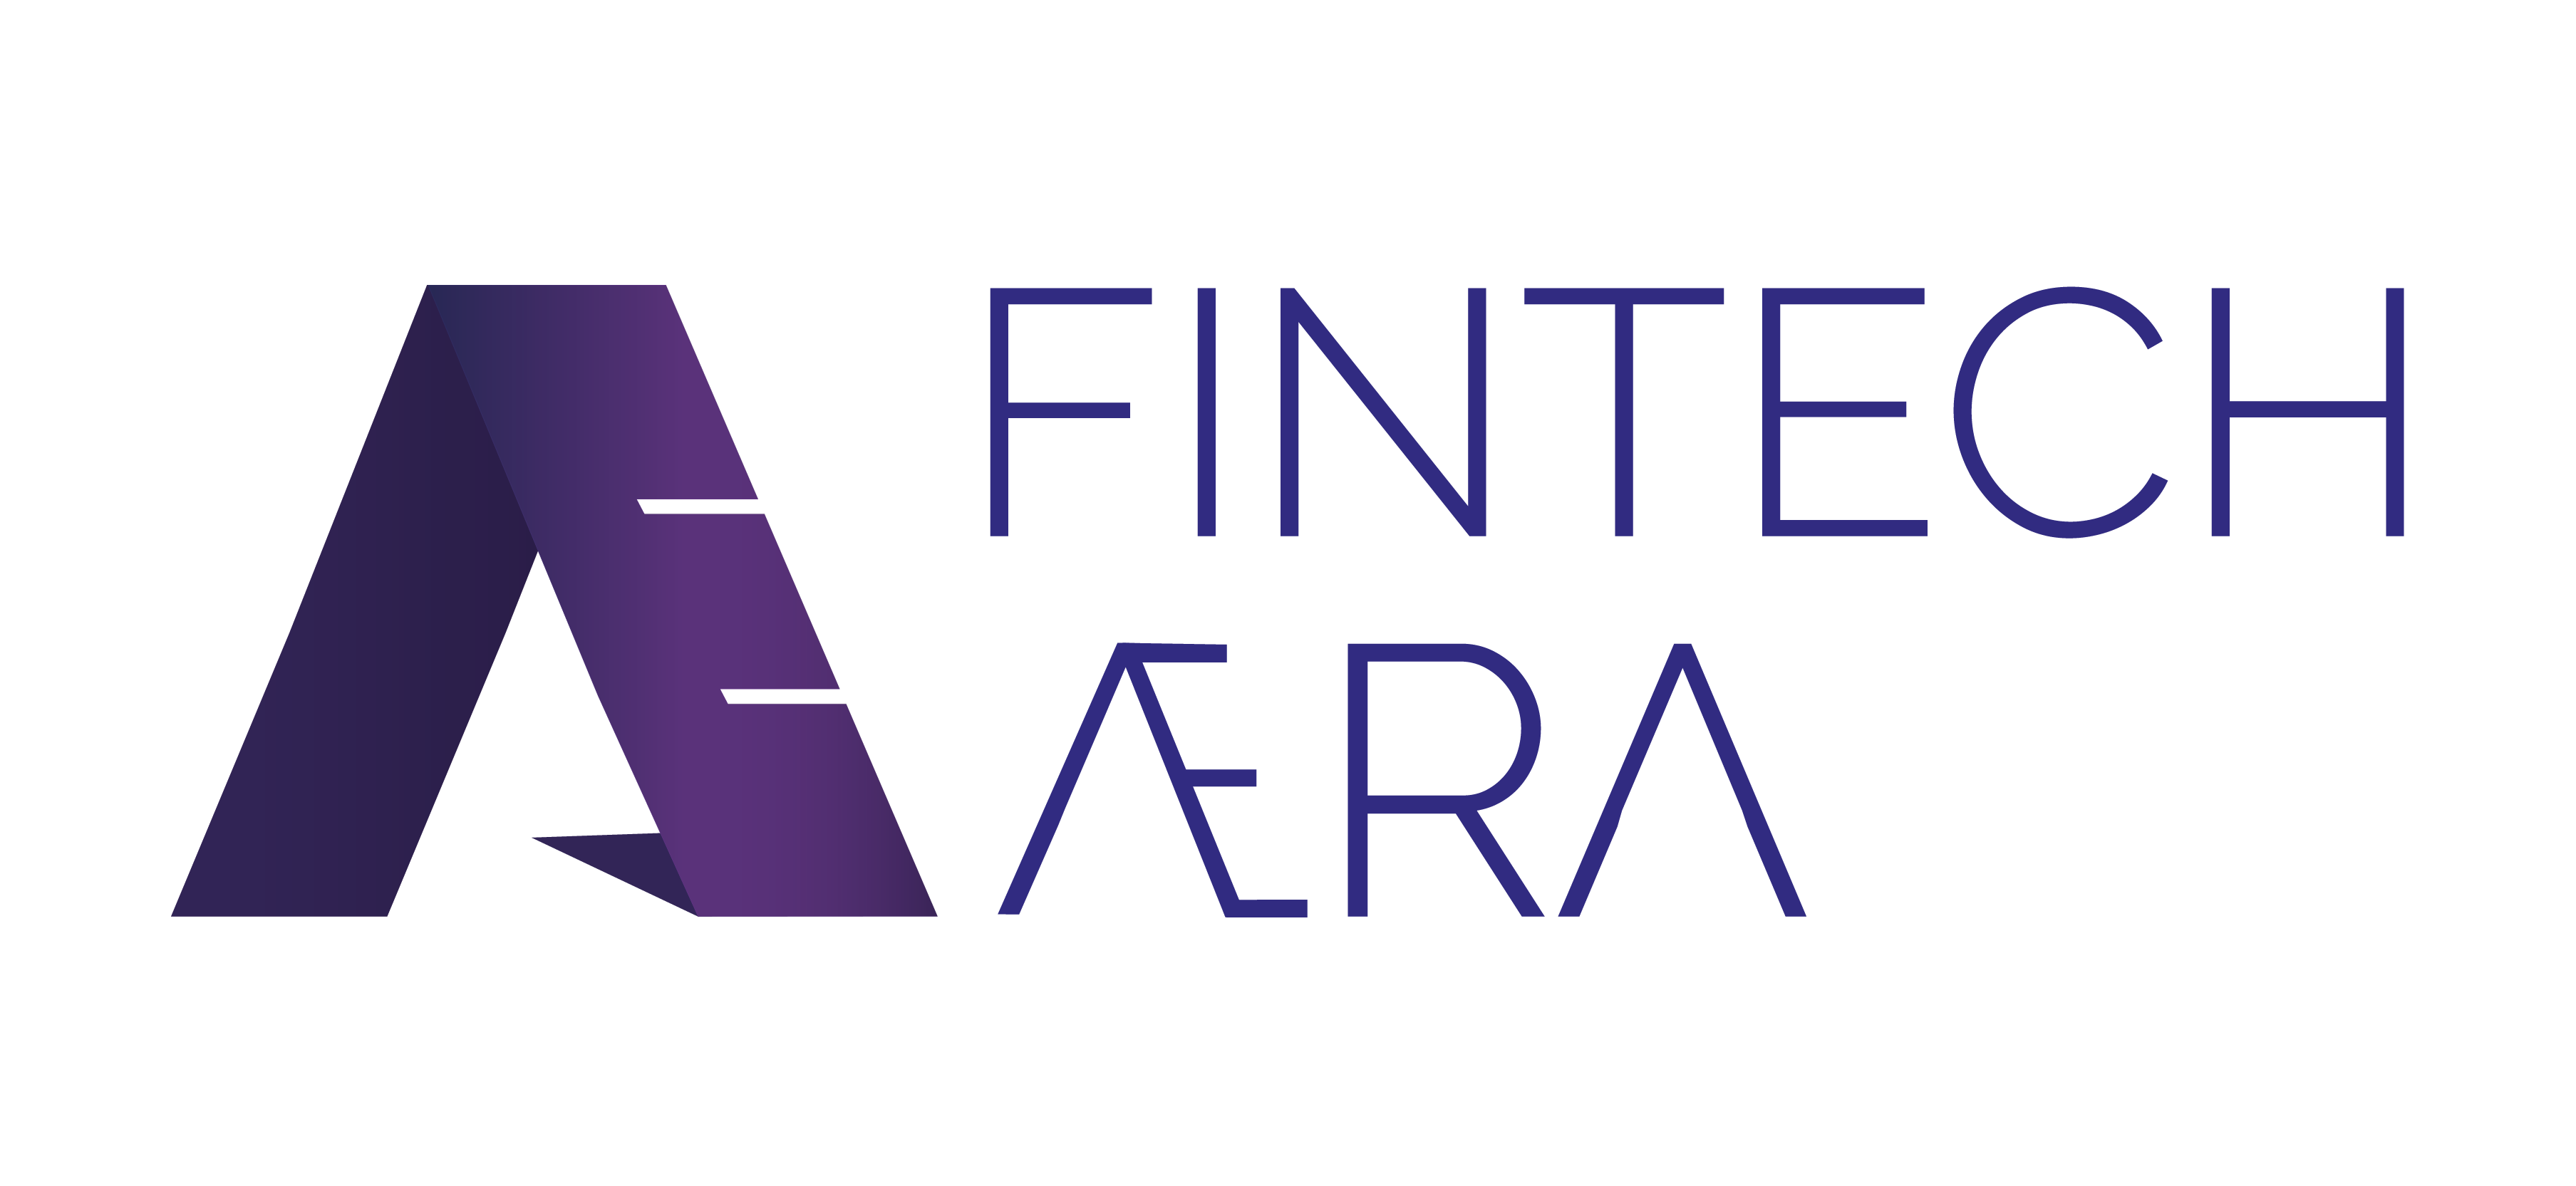 FINTECH ÆRA Foundation